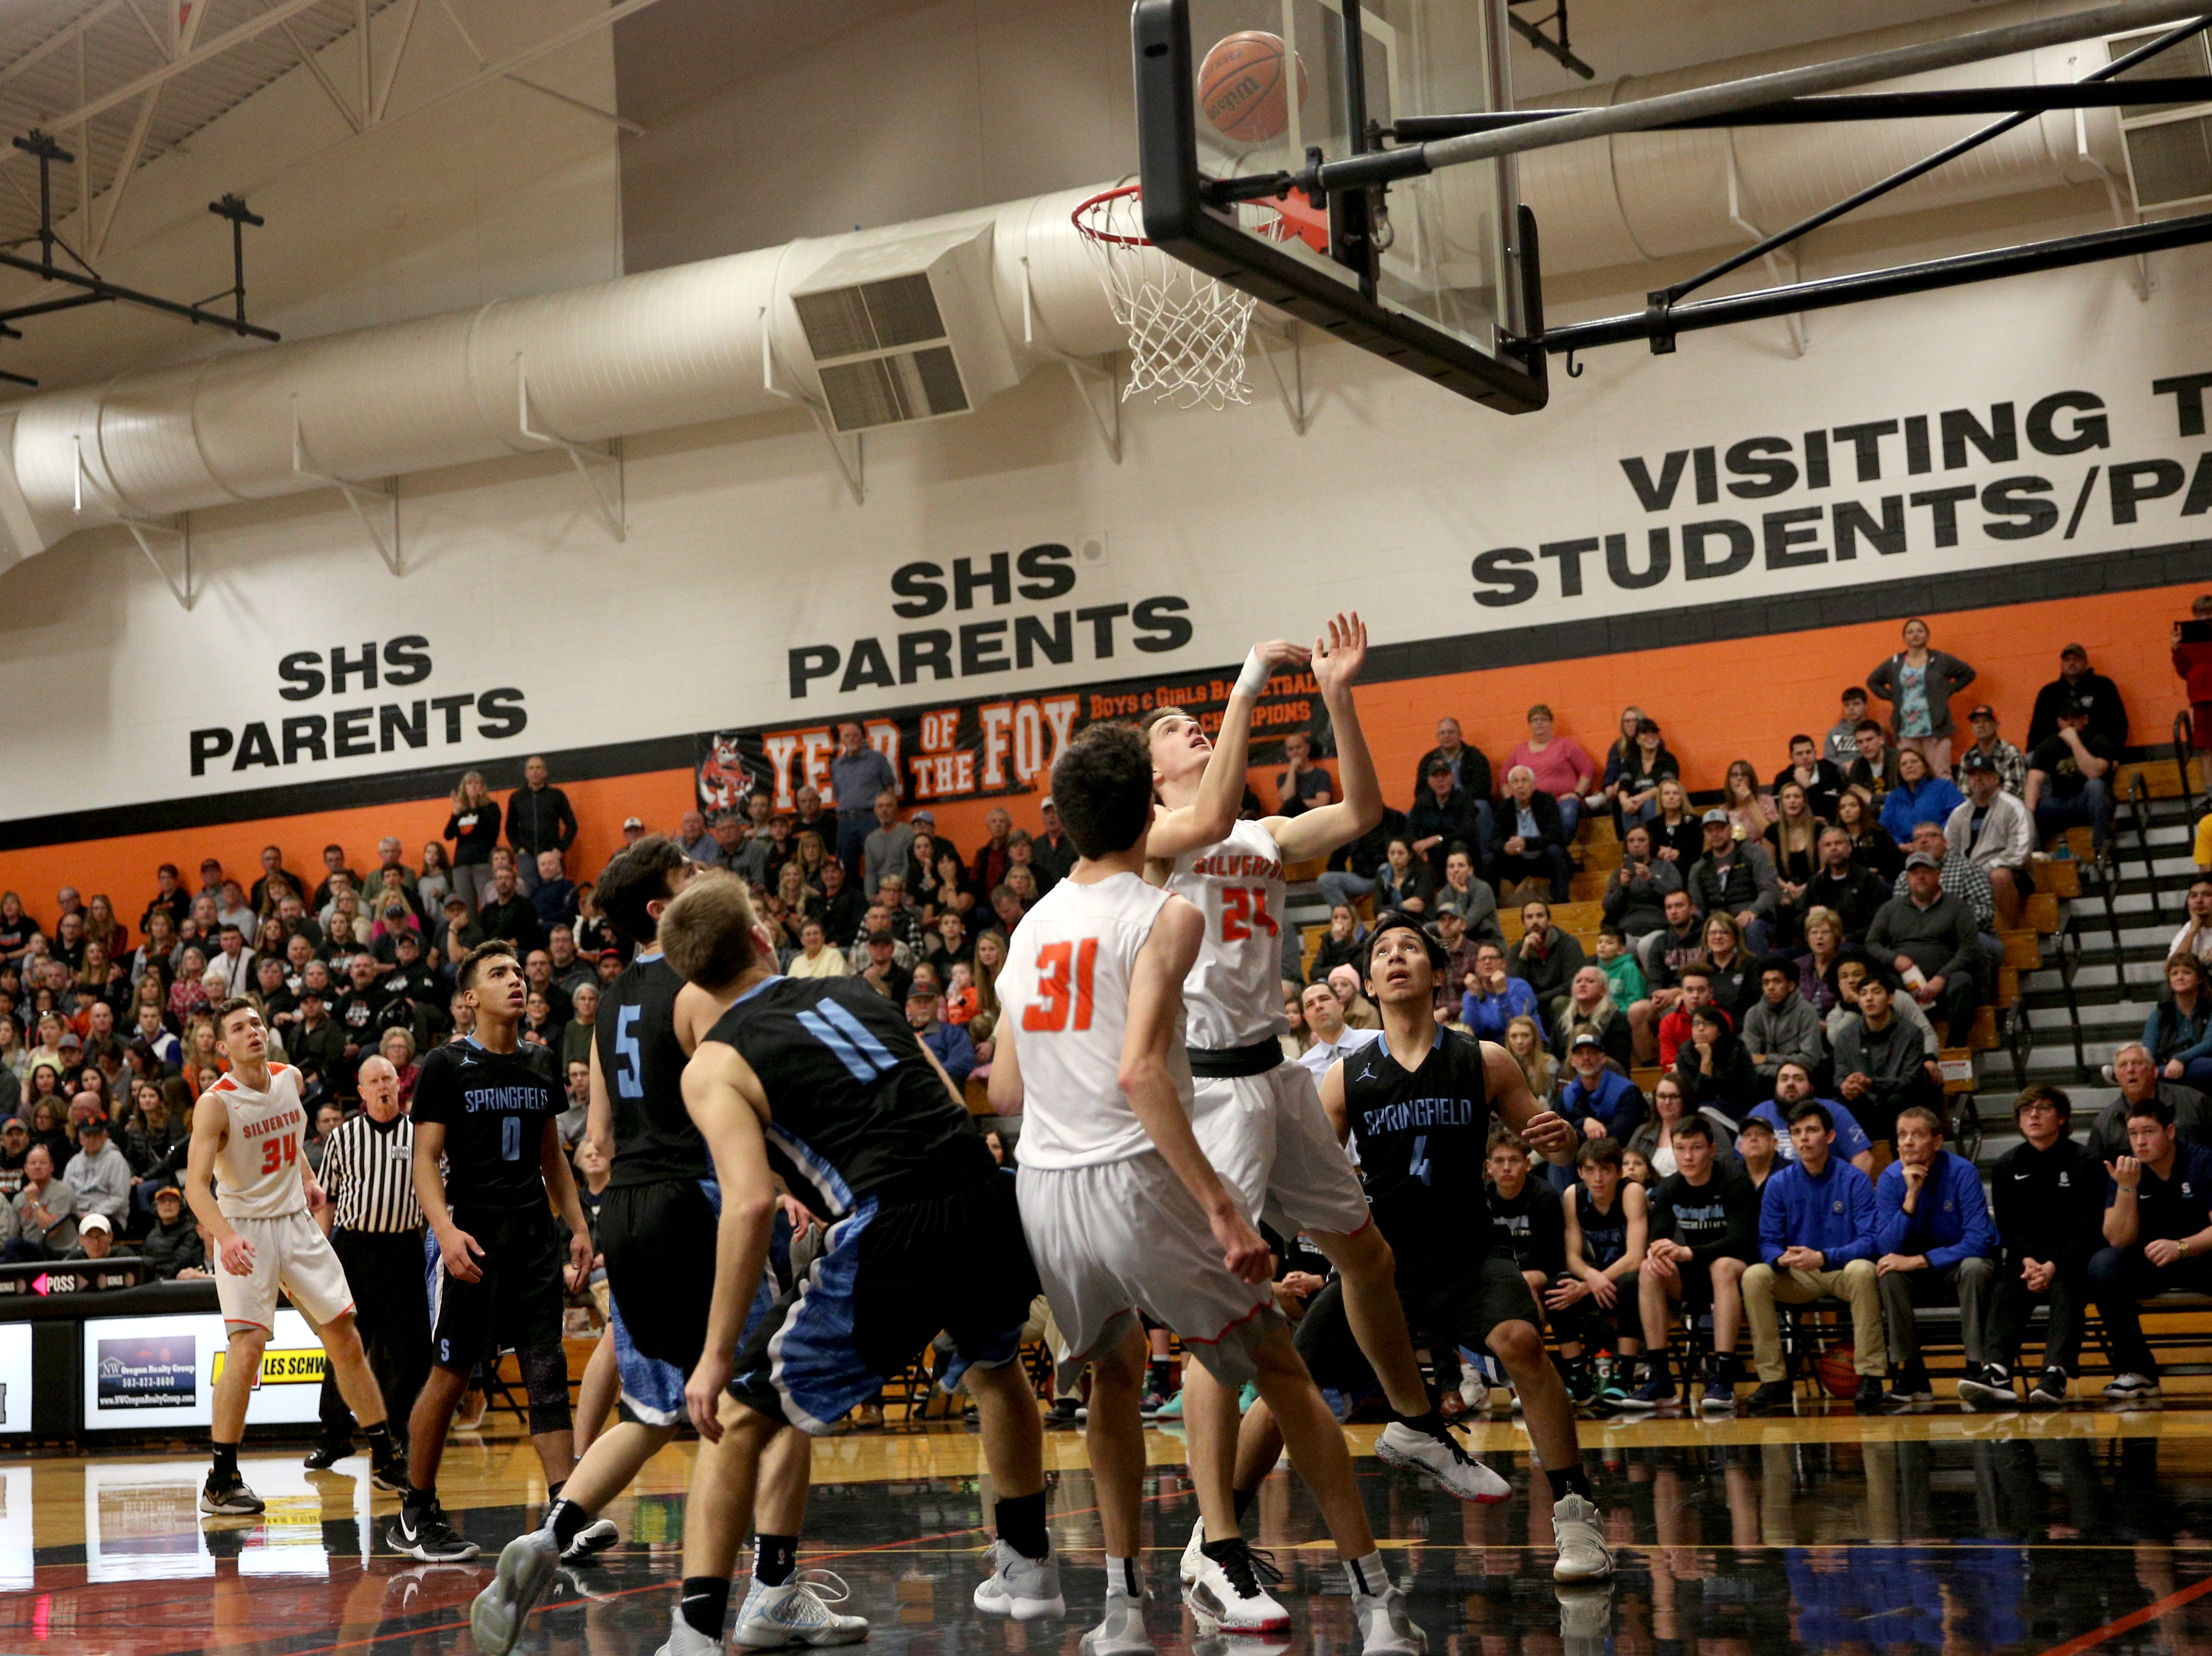 Owen Cote goes up for a shot during the Silverton vs. Springfield boys basketball OSAA state playoffs game at Silverton High School in Silverton on Saturday, March 2, 2019.